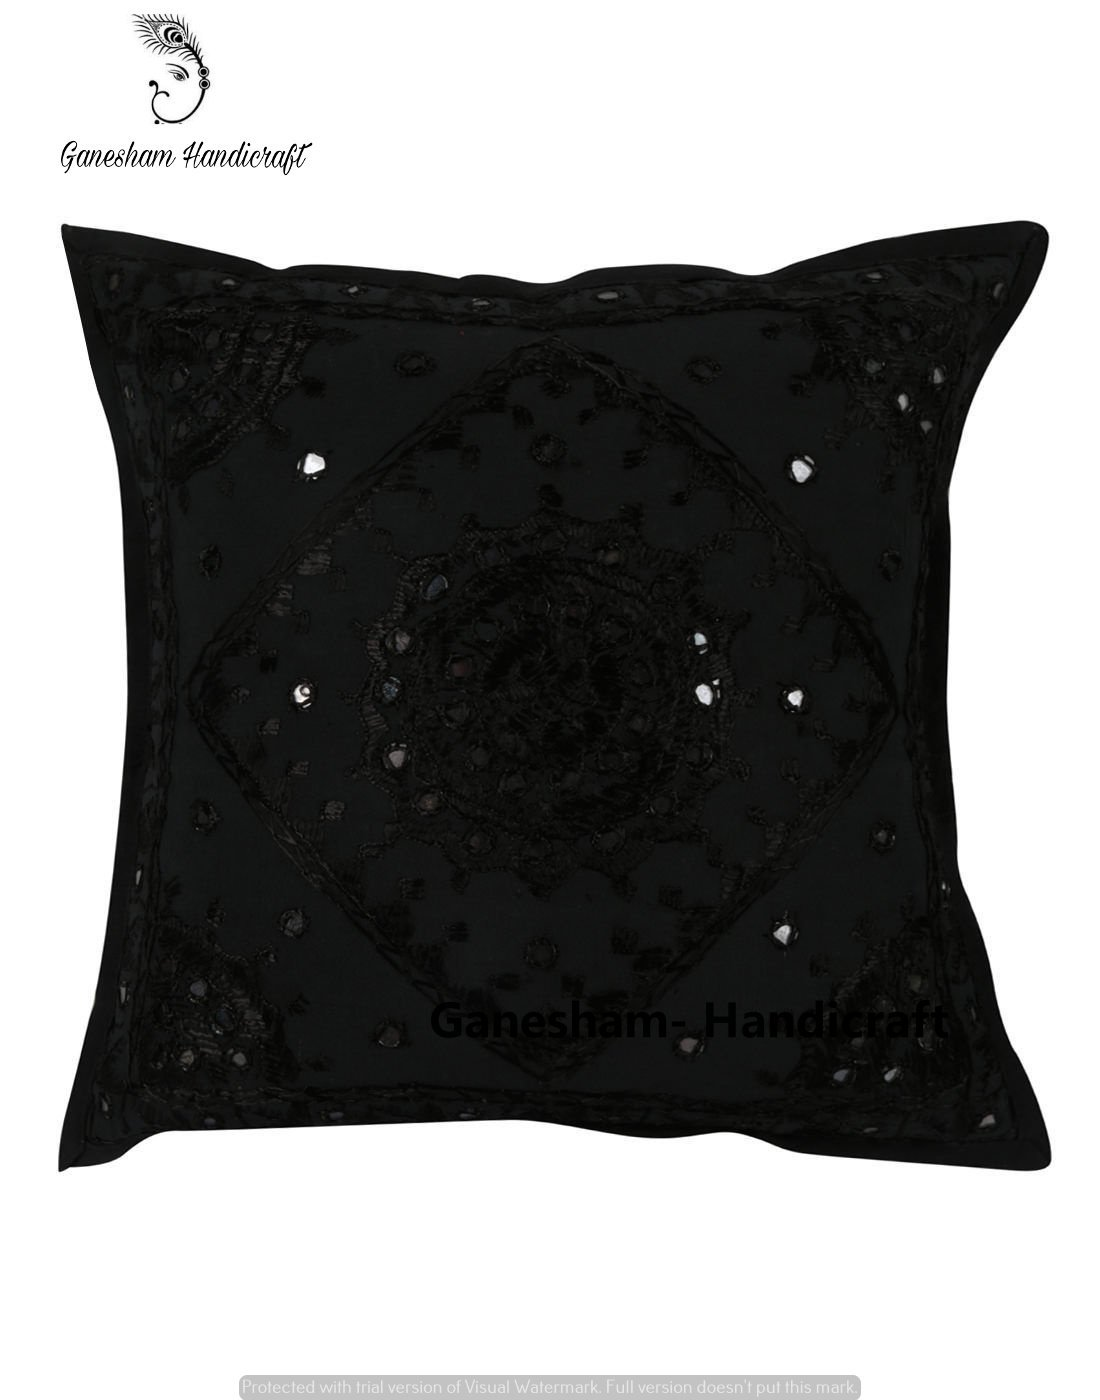 632058a396 Get Quotations · Ganesham Handicraft - Indian Bedroom Decor Cotton Pillow  Cover , Bohemian Throw Pillow Insert Hand Embroidered